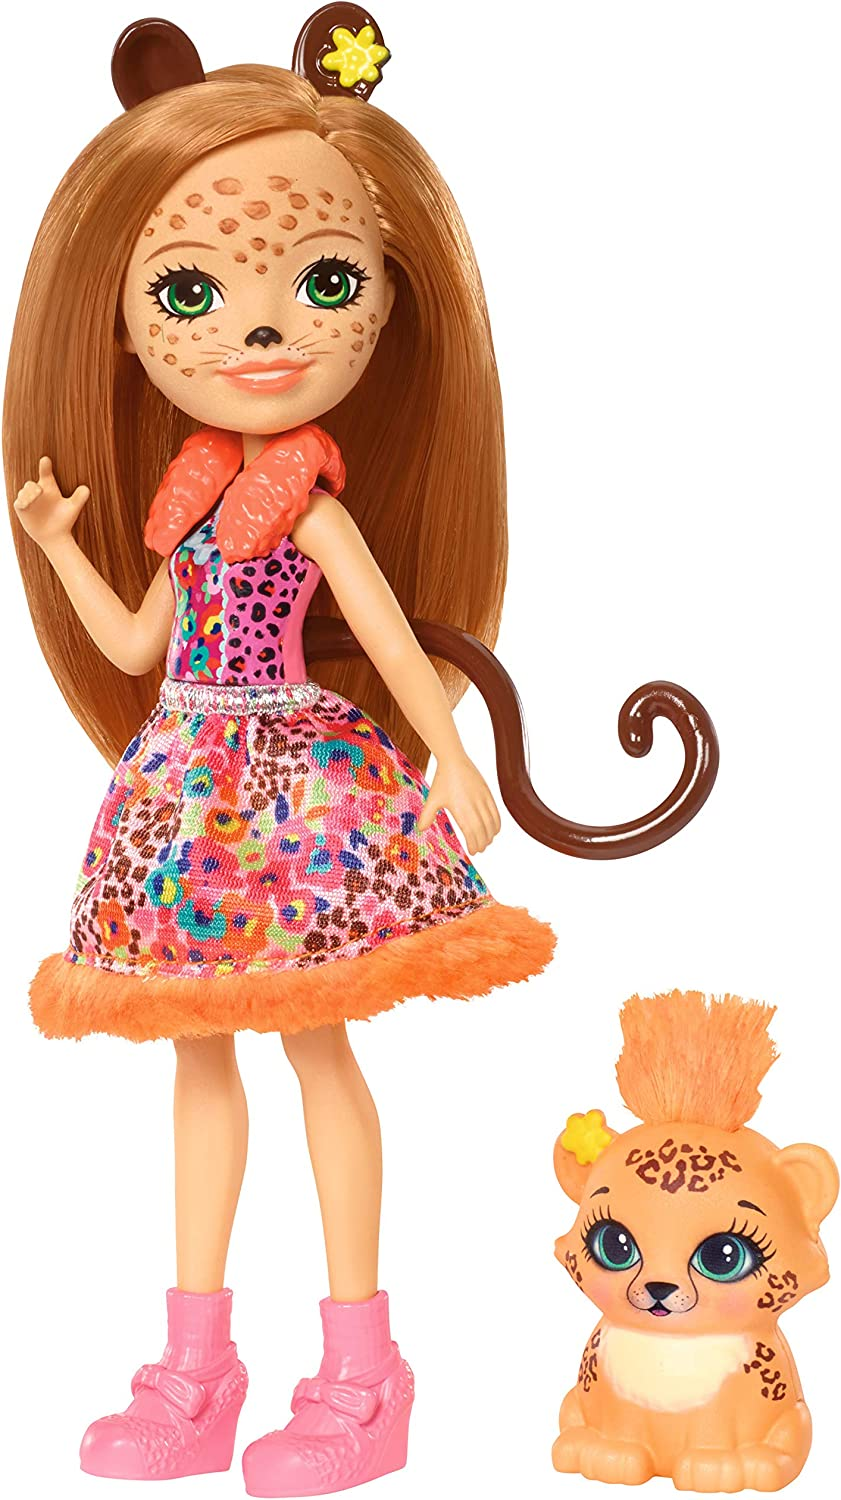 Enchantimals Cherish Cheetah Doll